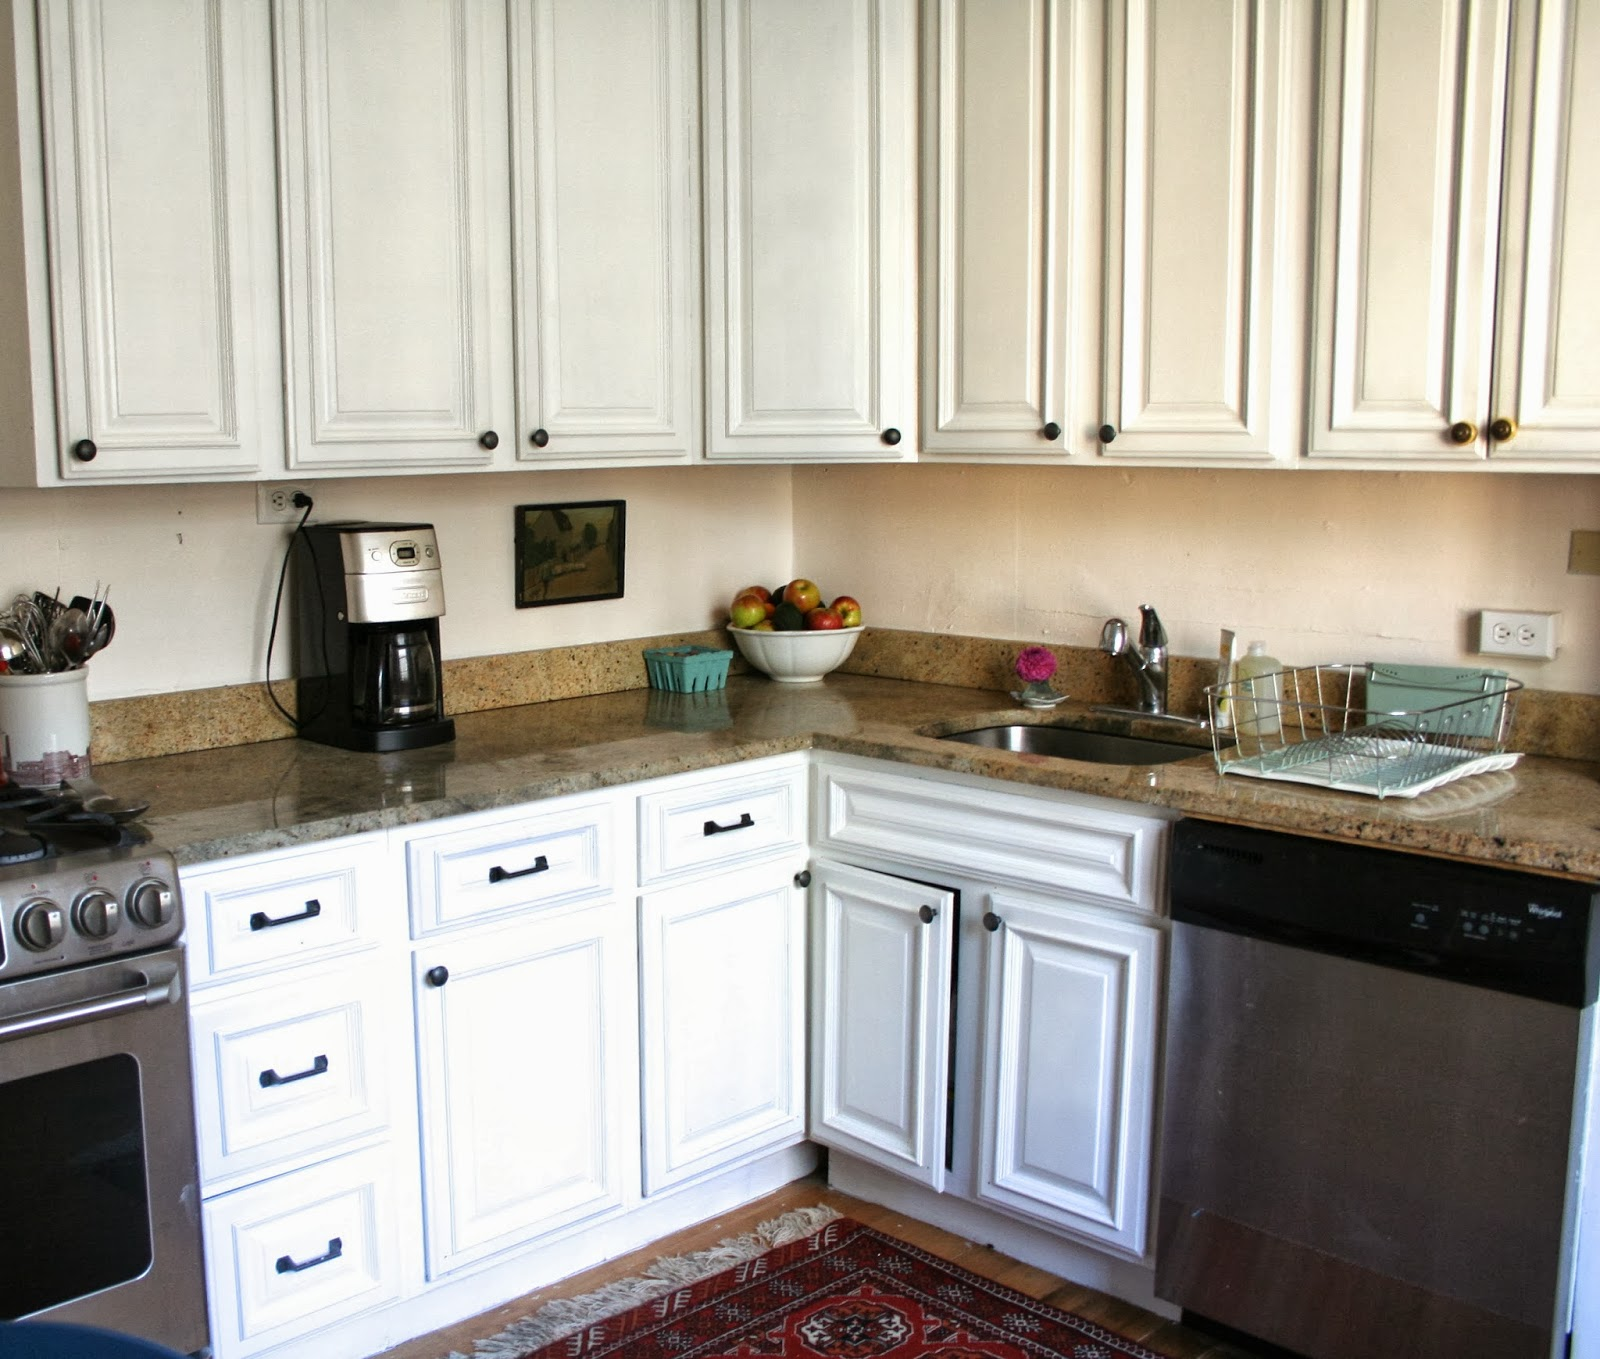 Kitchen Updates Before And After: Mel & Liza: Kitchen Update: Before & After